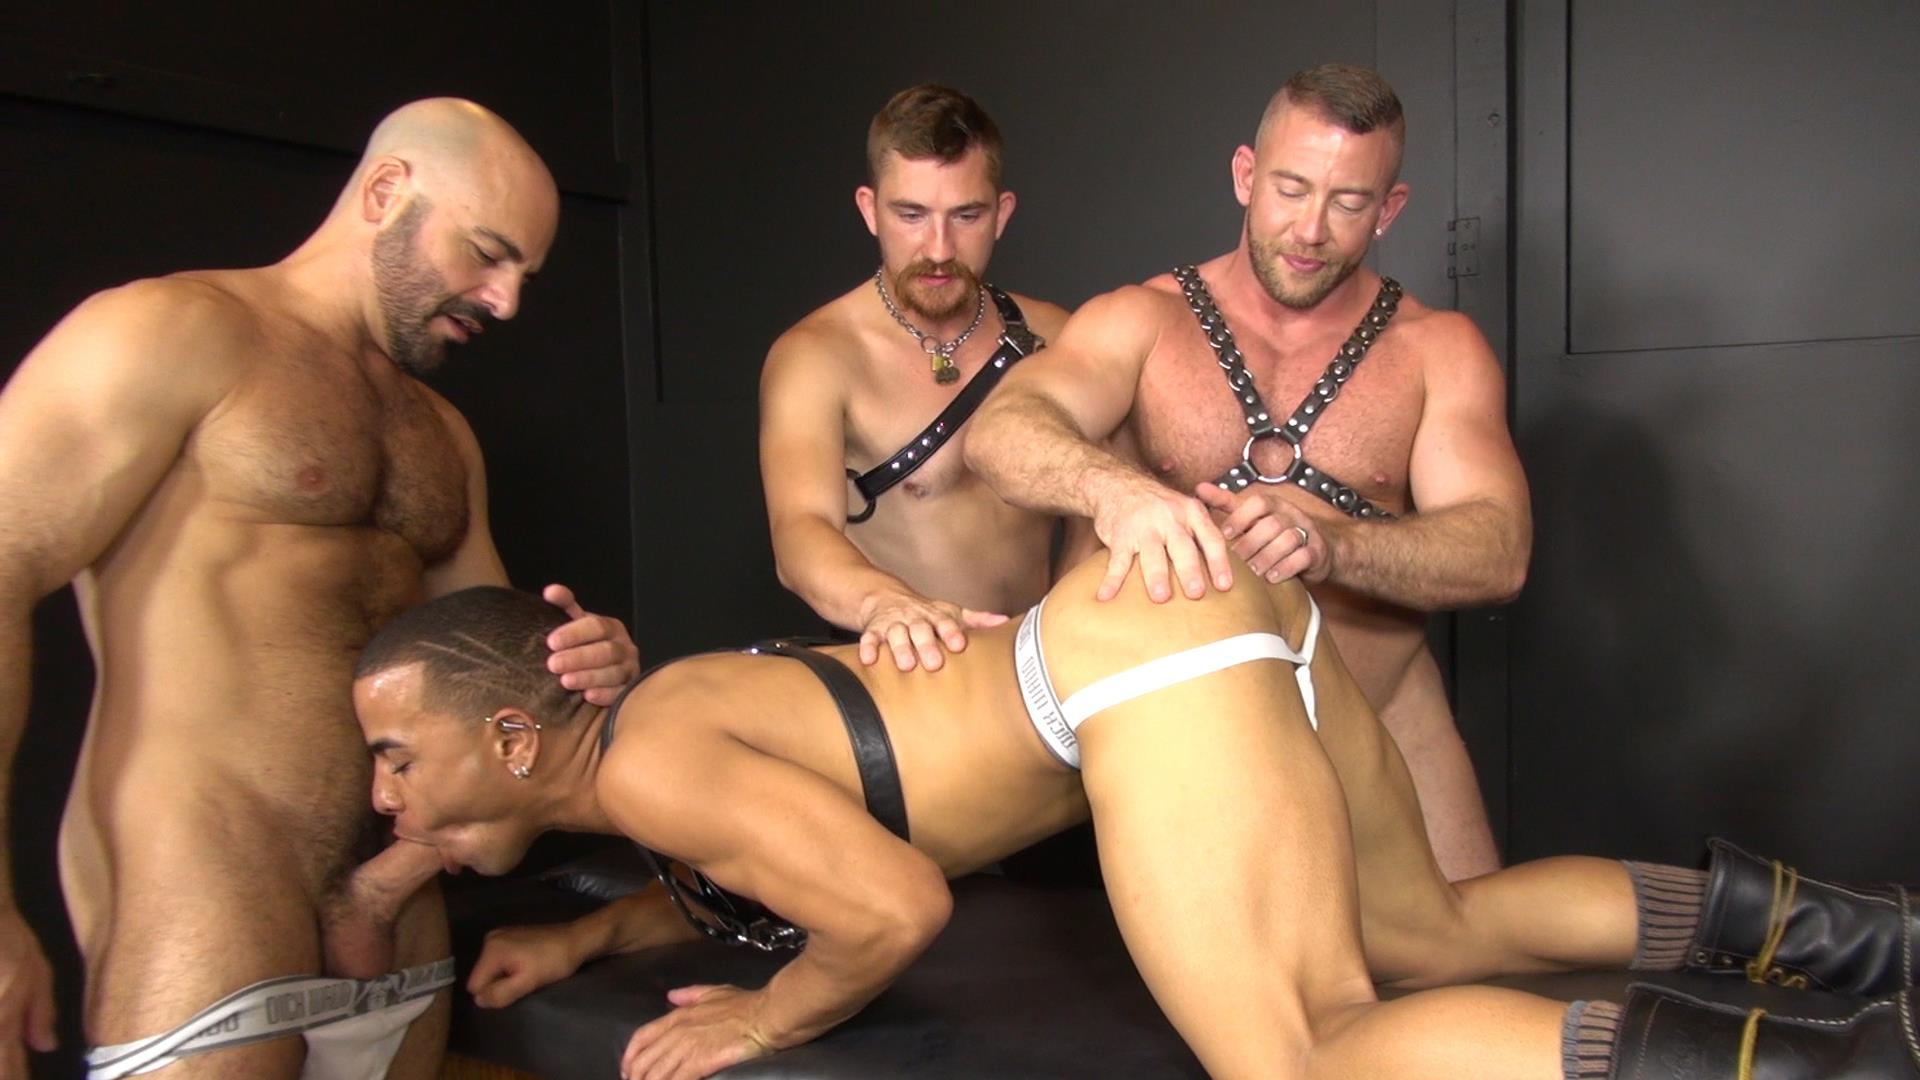 Interracial Gay Orgy 110